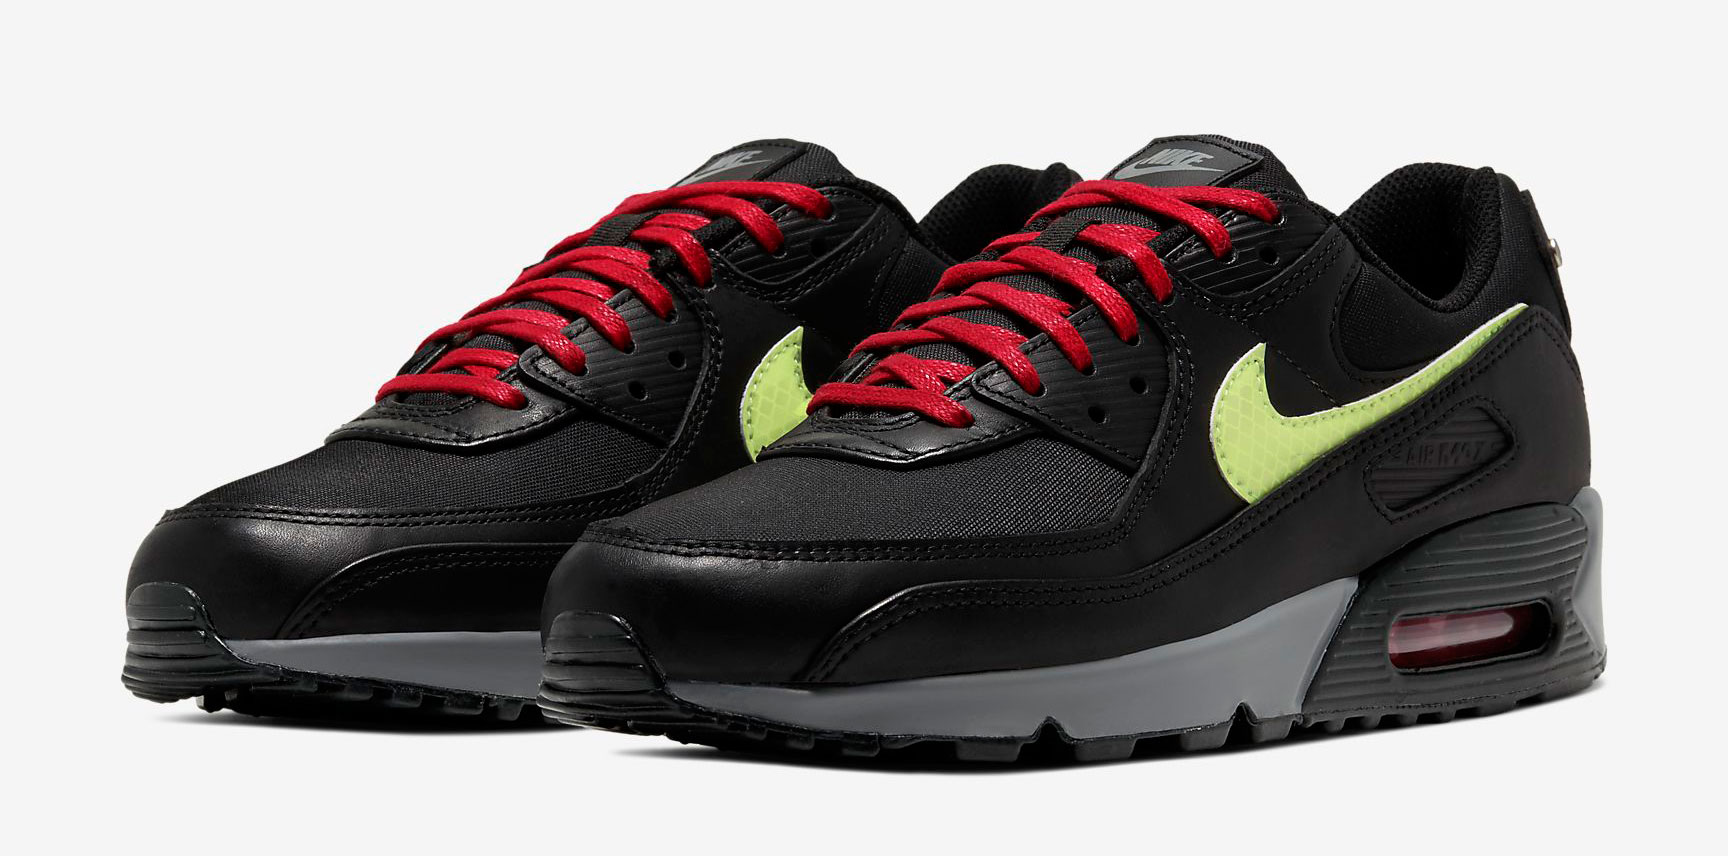 nike-air-max-90-fdny-release-date-1